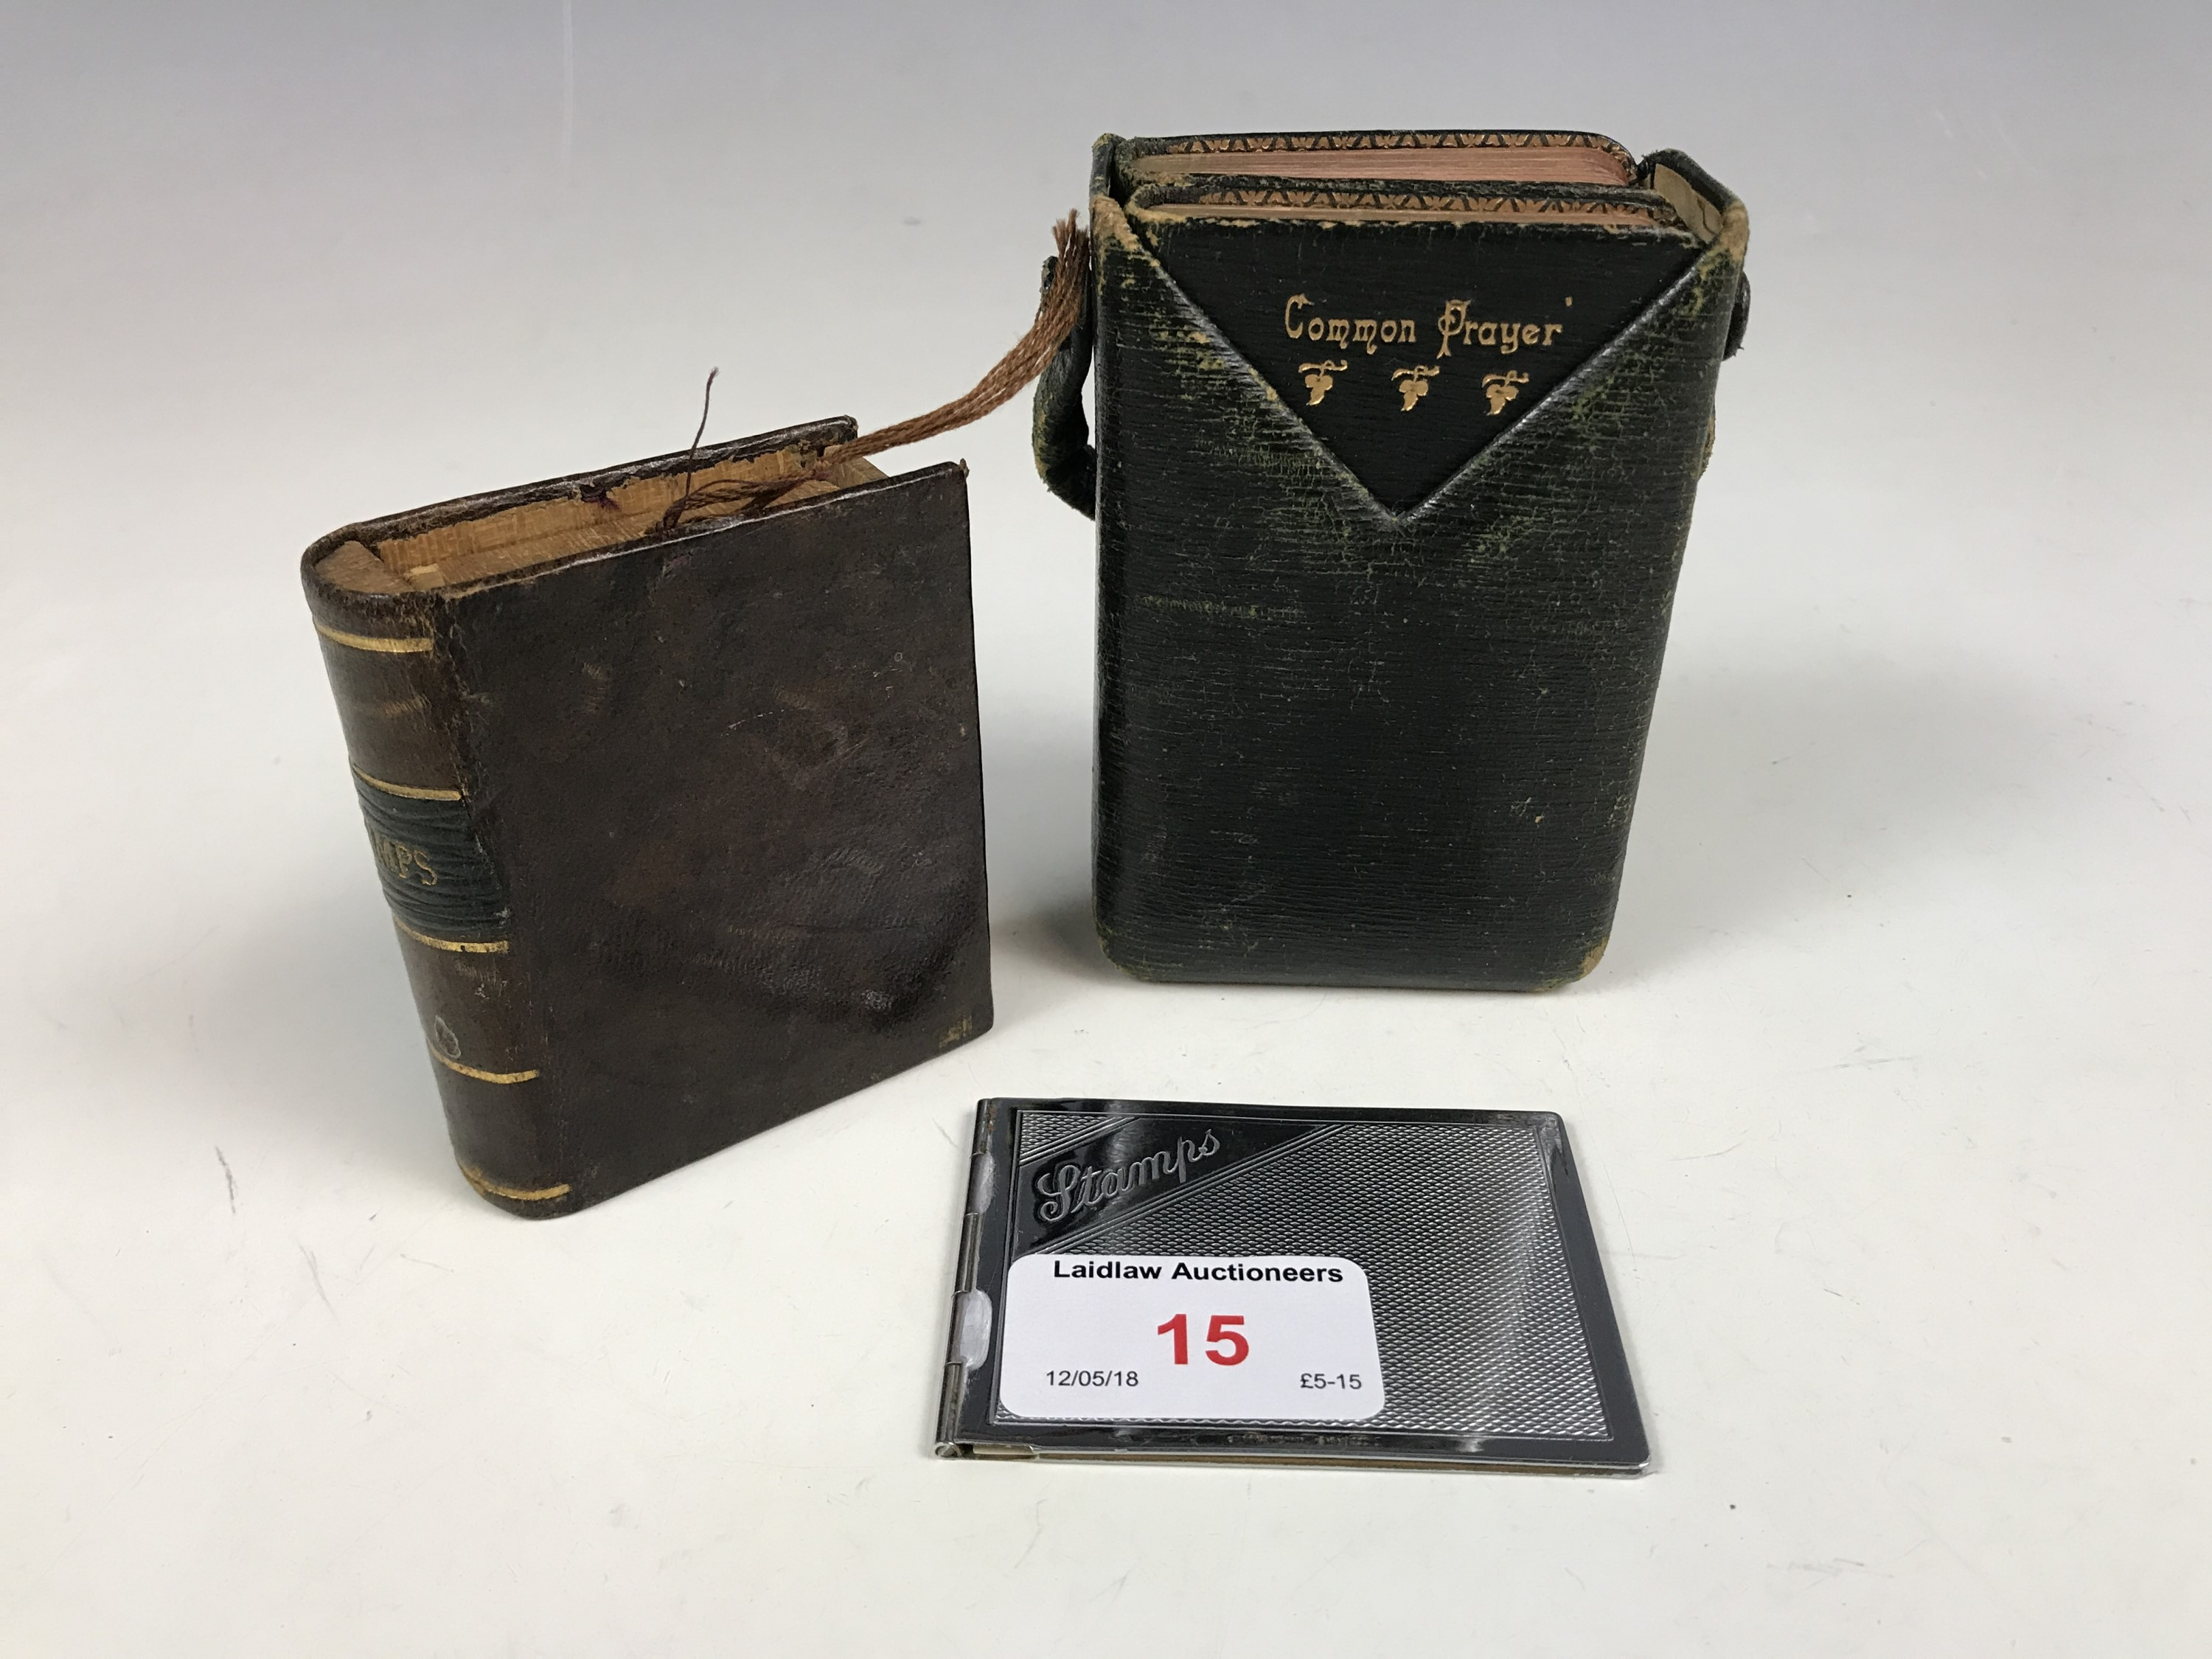 Lot 15 - A book of Common Prayer, treen stamp box etc